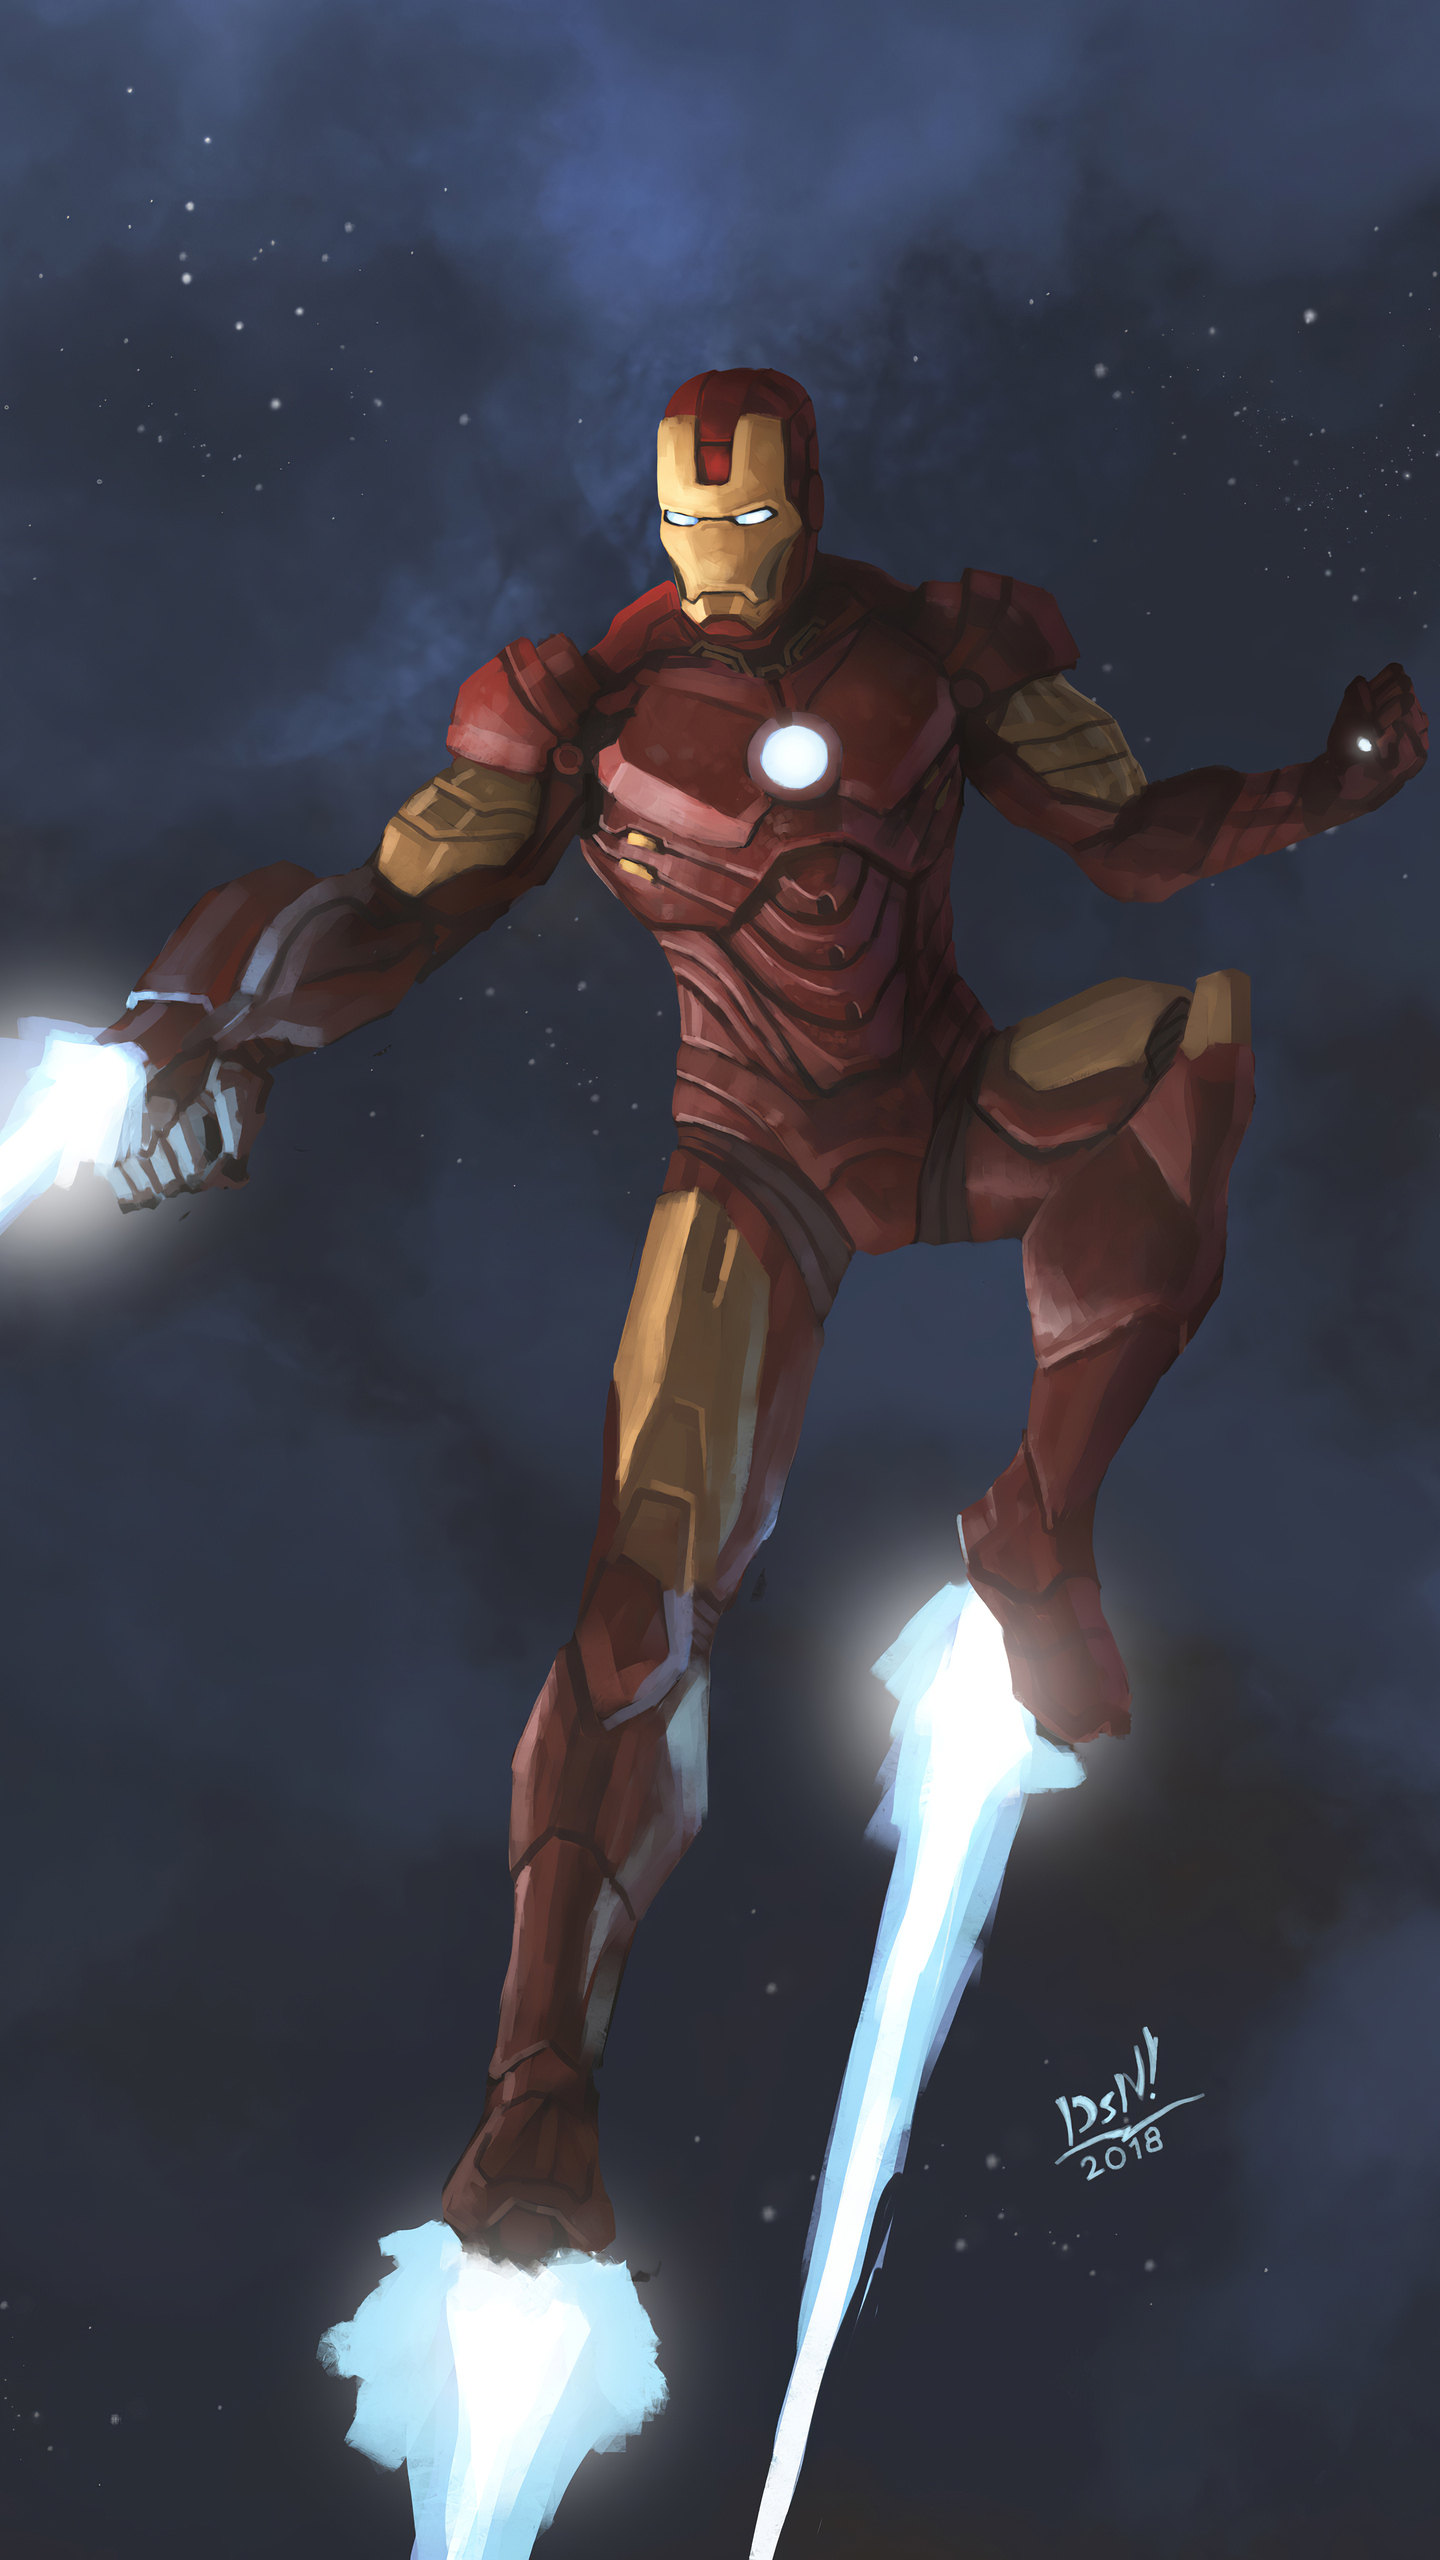 iron-man-blaster-4k-artwork-bg.jpg